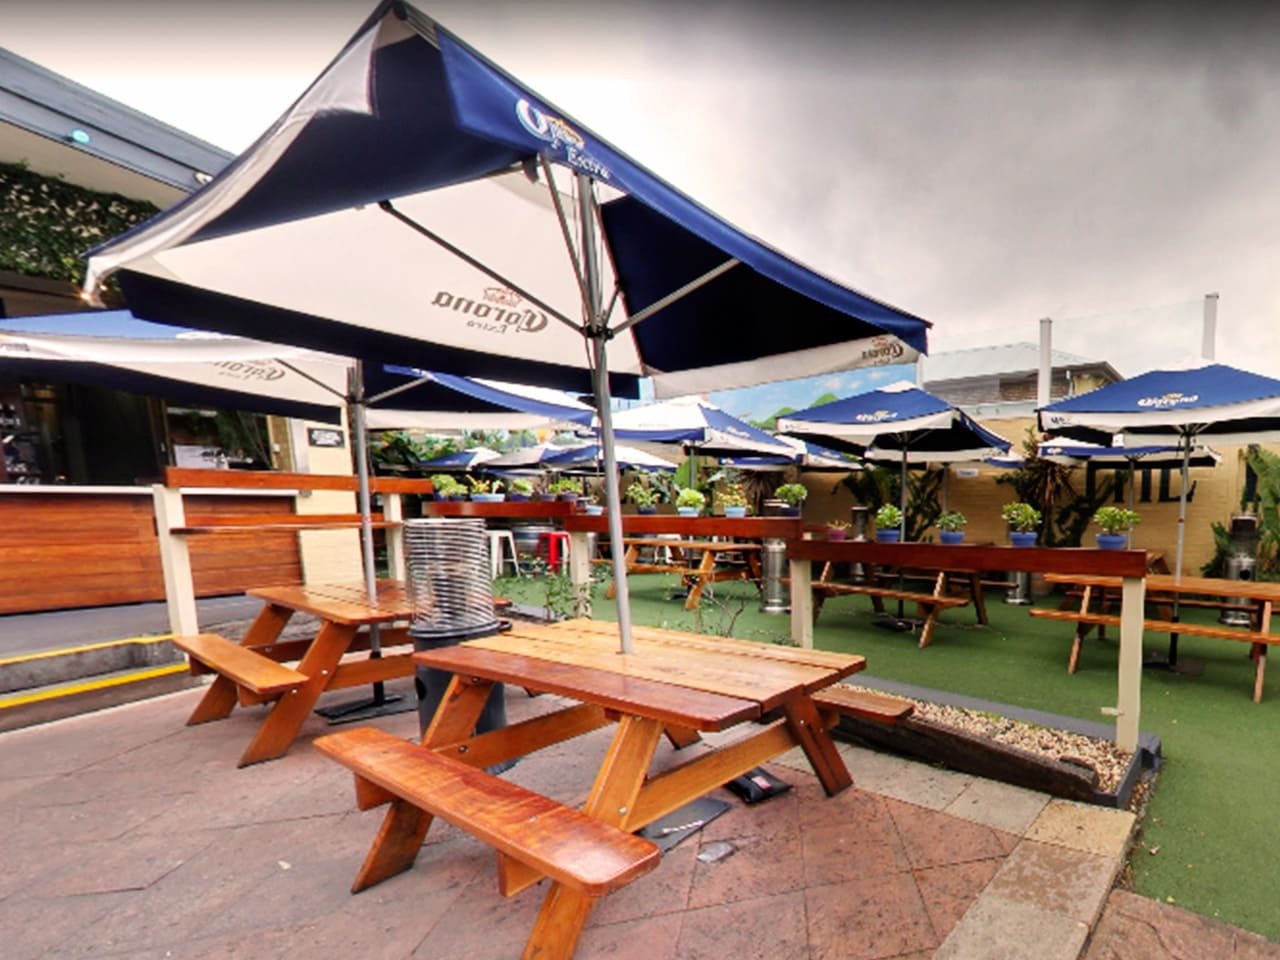 Wooden Tables And Chairs With Umbrellas And Green Plants In The Outdoor Function Venue